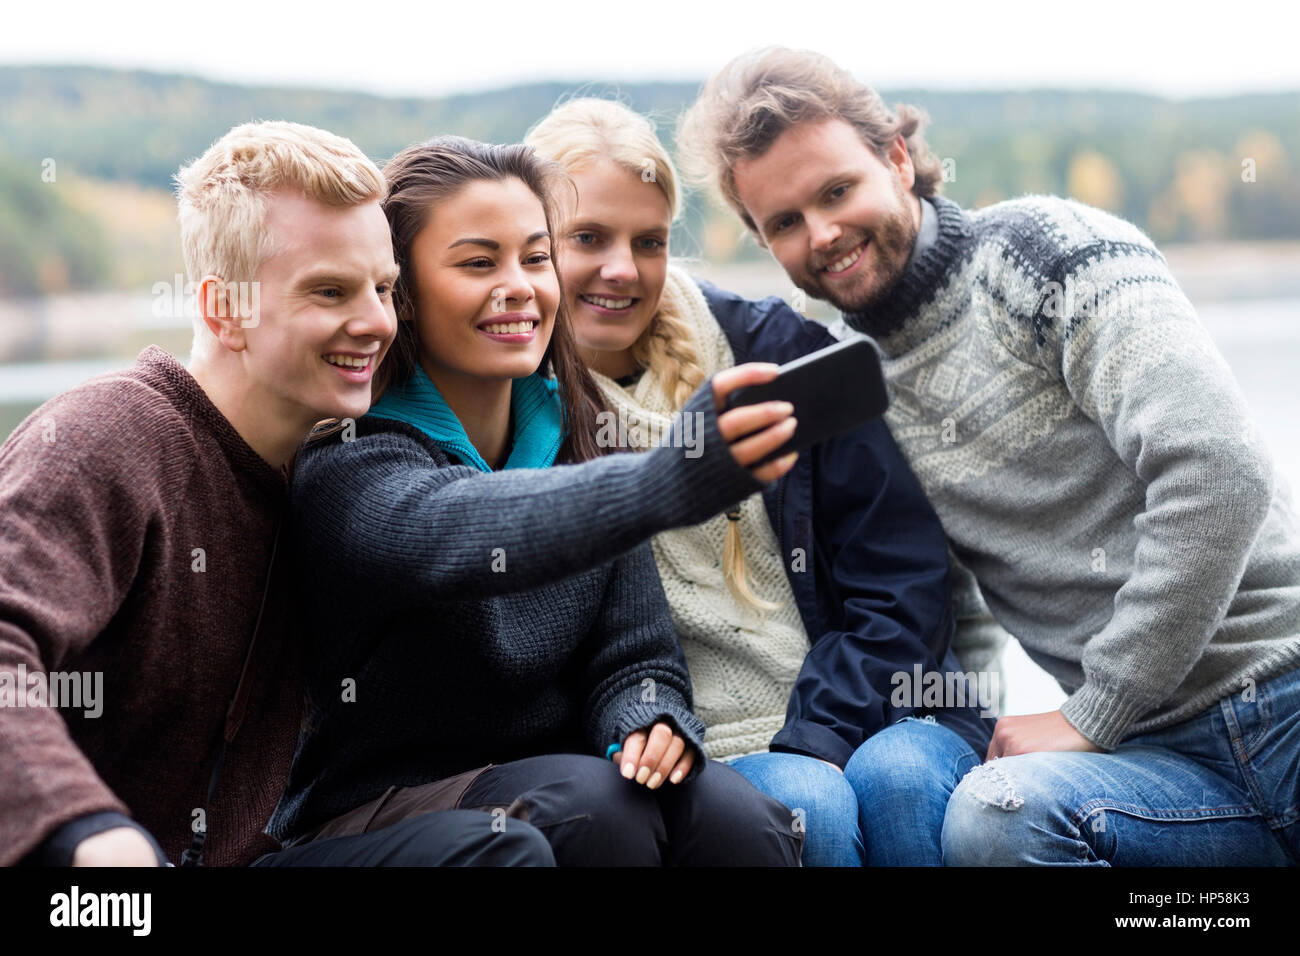 Friends Taking Selfie With Smartphone At Campsite - Stock Image